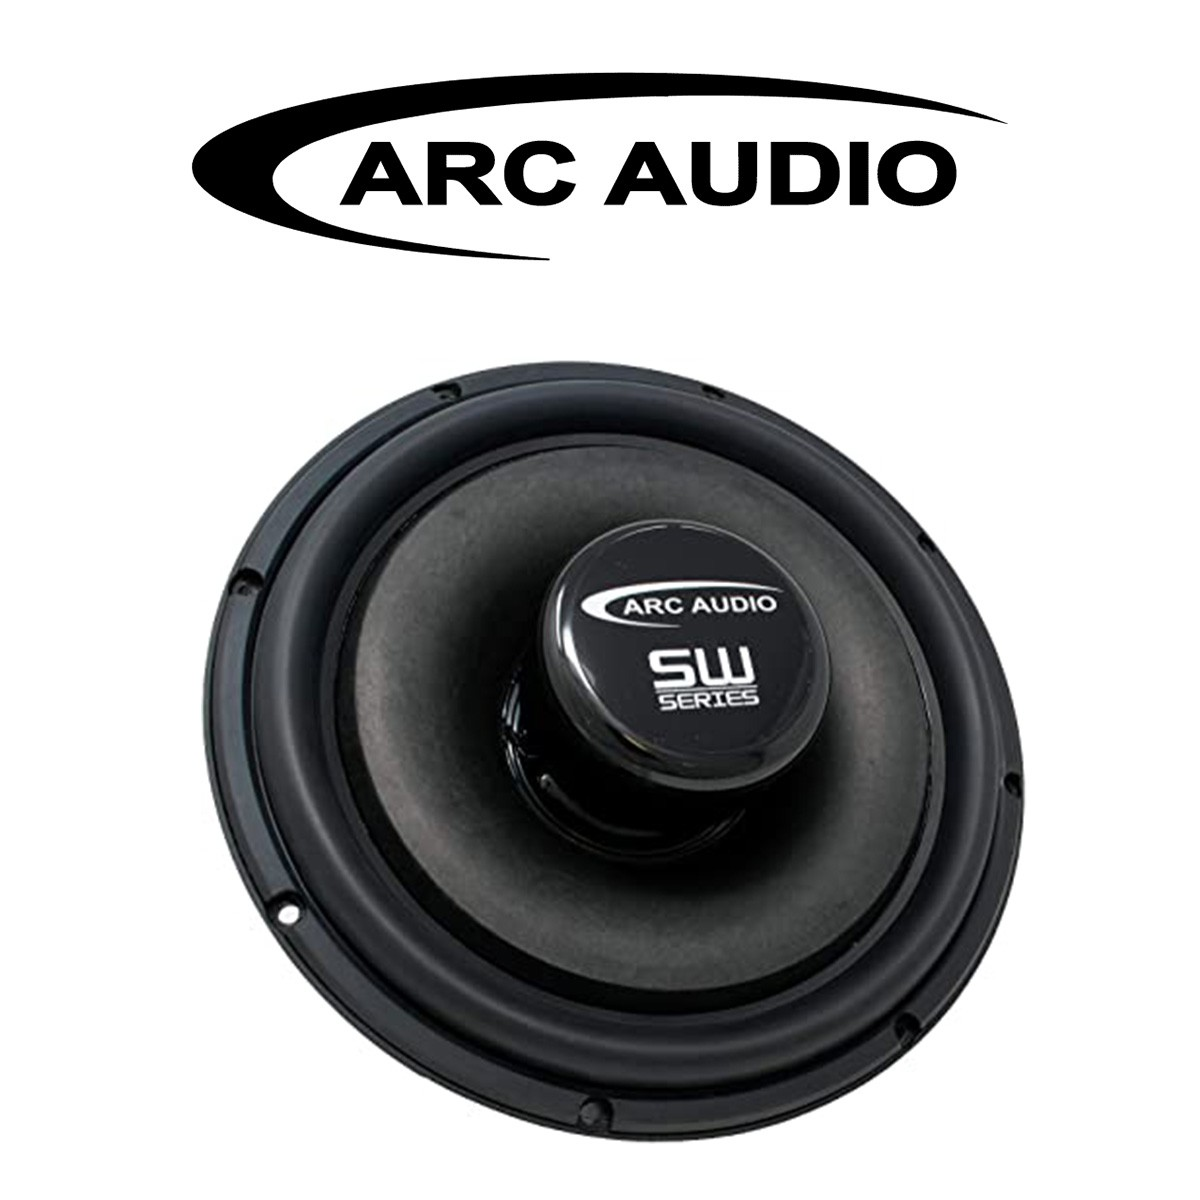 ARC AUDIO SW 12D4 - SUBWOOFER PASIF 12 INCHI